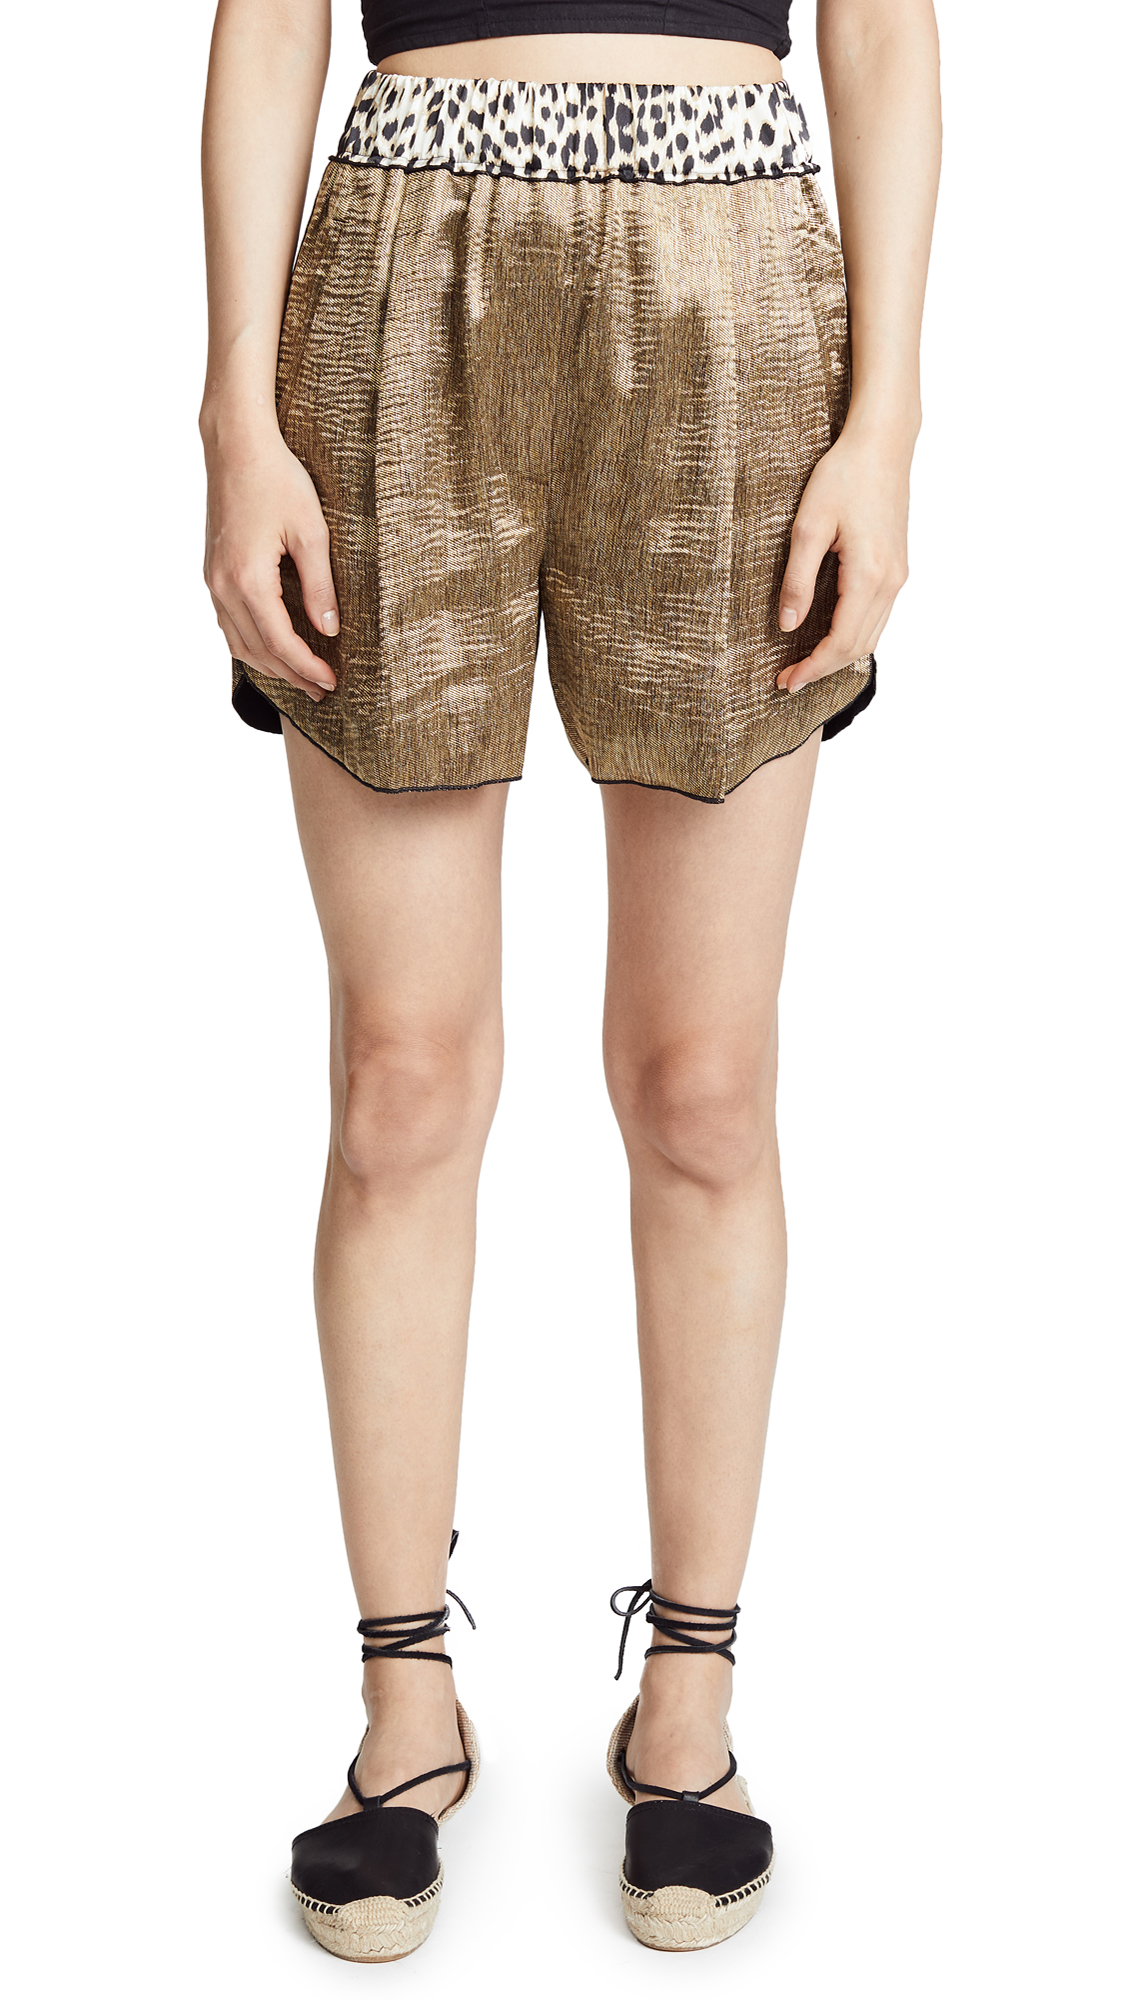 GIADA FORTE POLISHED DIAGONAL SHORTS